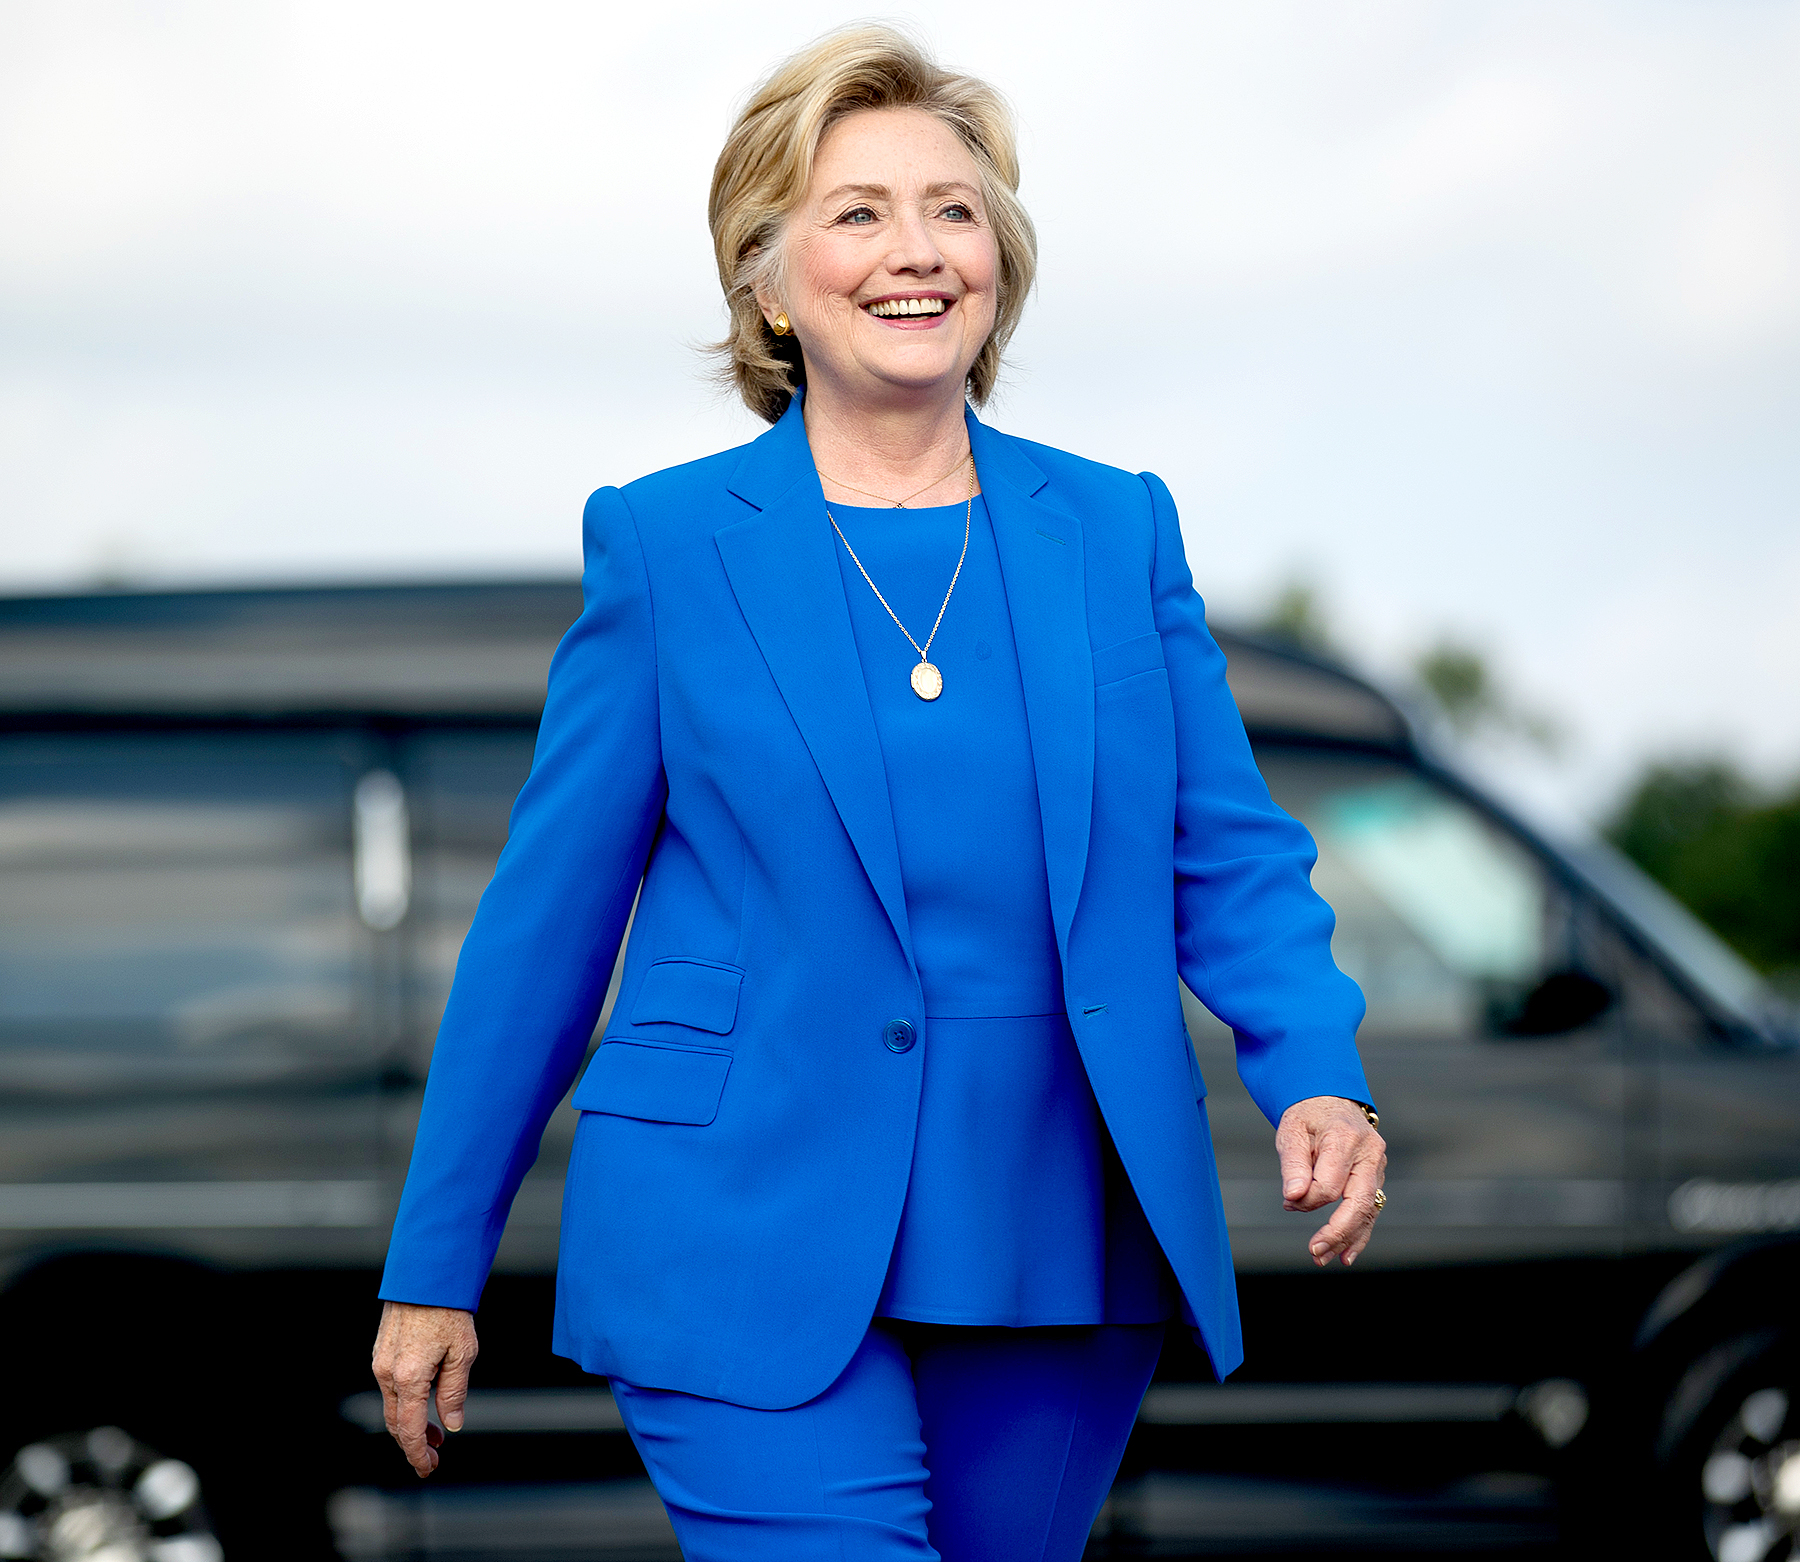 Democratic presidential candidate Hillary Clinton arrives to speak to members of the media before boarding her campaign plane at Westchester County Airport in White Plains, N.Y., Thursday, Sept. 8, 2016, to travel to Charlotte, N.C., to attend a campaign rally.